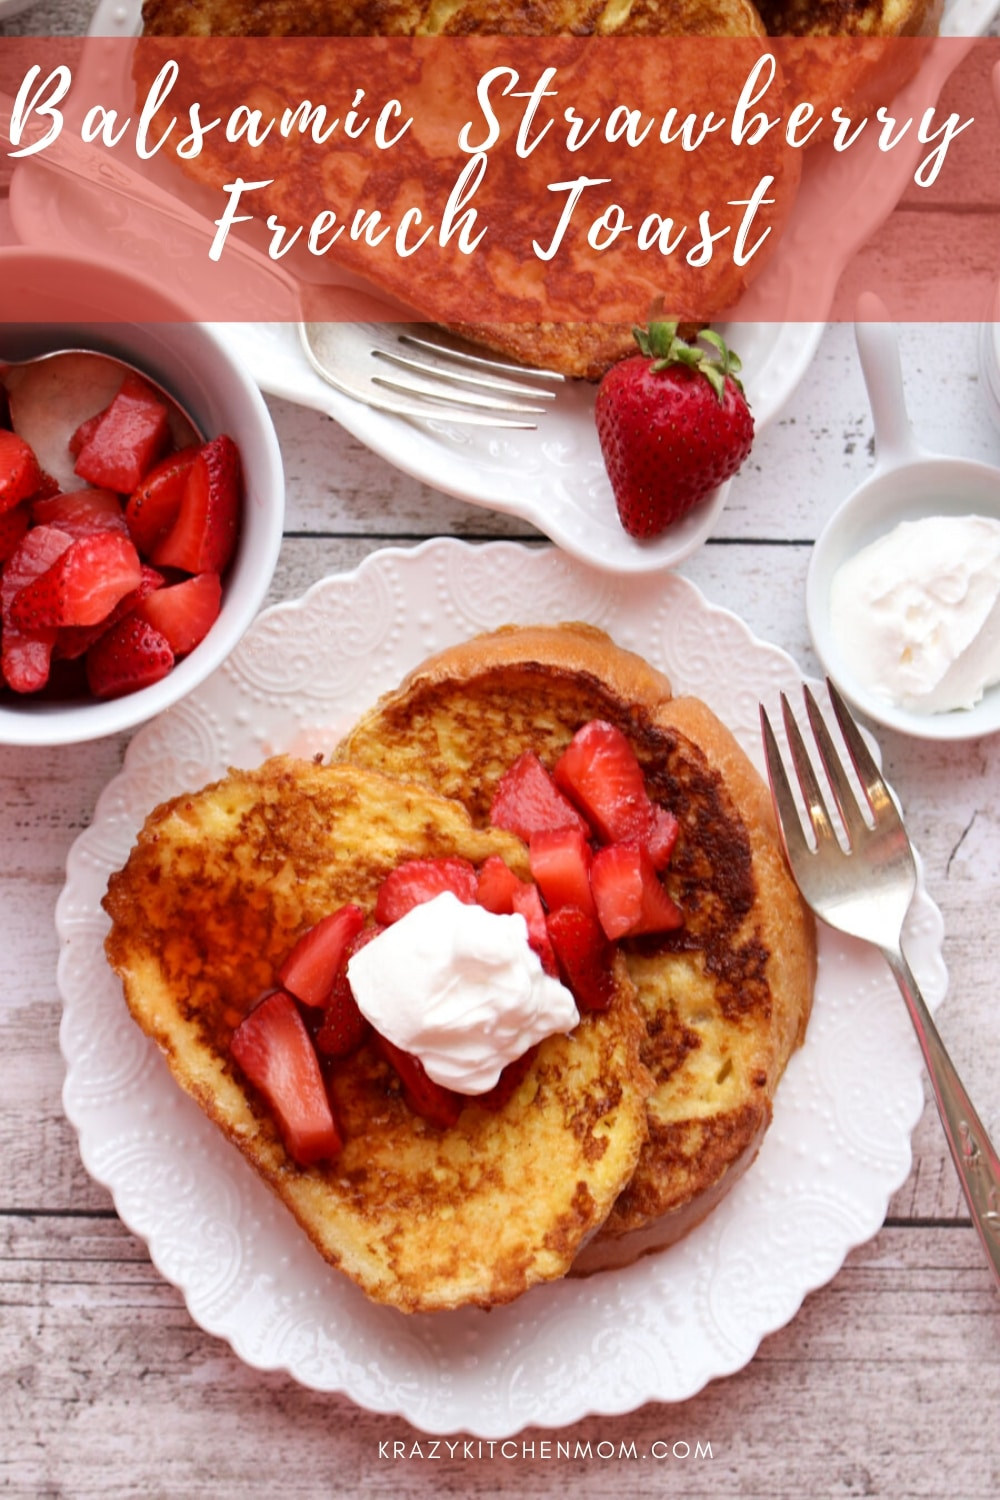 Make Frech Toast fancy! Weekends are made for brunch. This weekend, make easy and deliciousFrench Toast with Balsamic Strawberries and Cream. via @krazykitchenmom